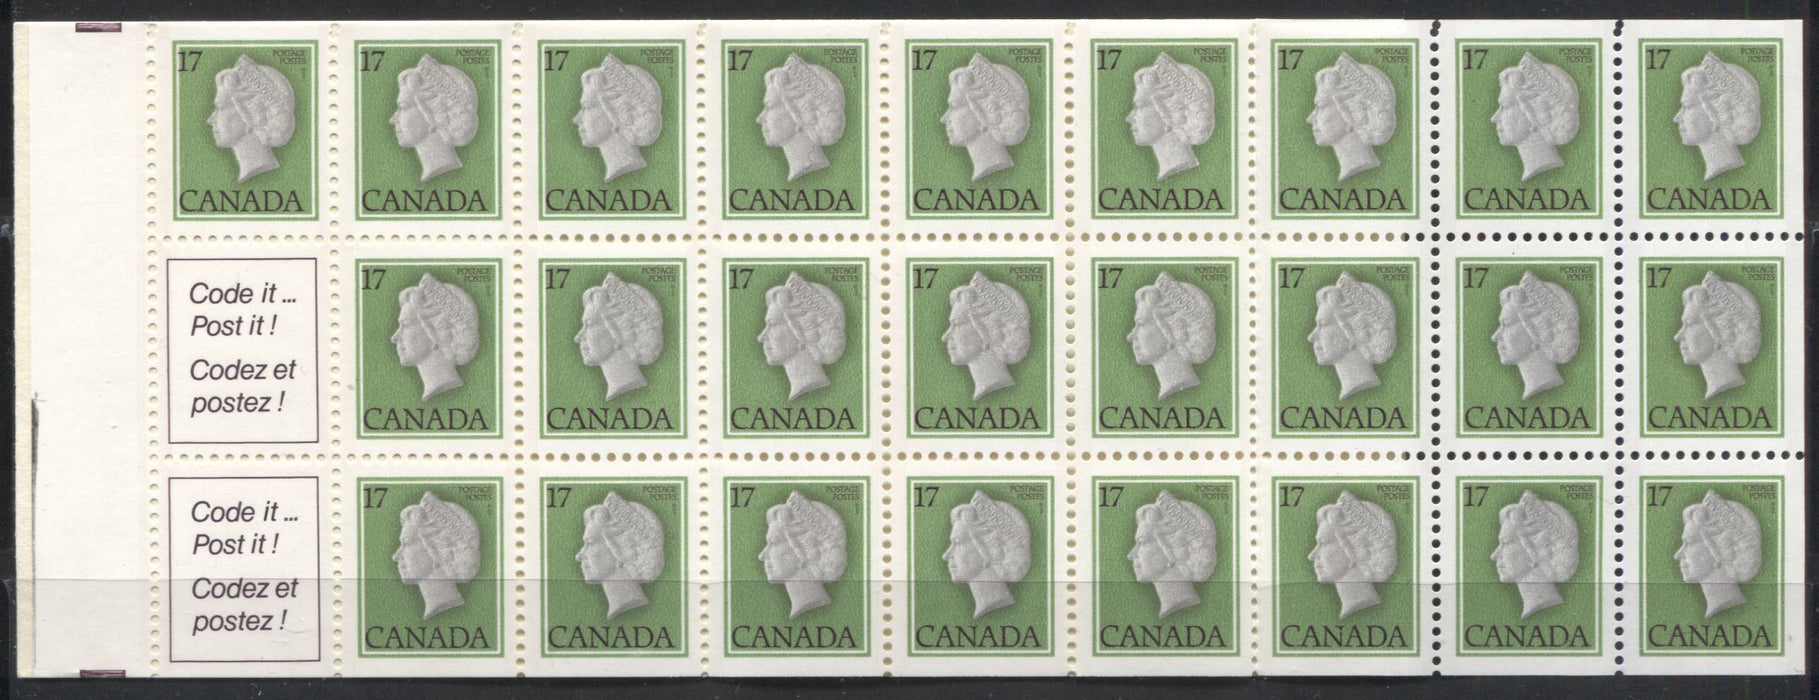 Canada McCann #BK81Ahvar 1977-1982 Floral and Environment Issue, Complete $4.25 Booklet DF Cover, DF Vertically Ribbed Pane, Black Wedges on Tab